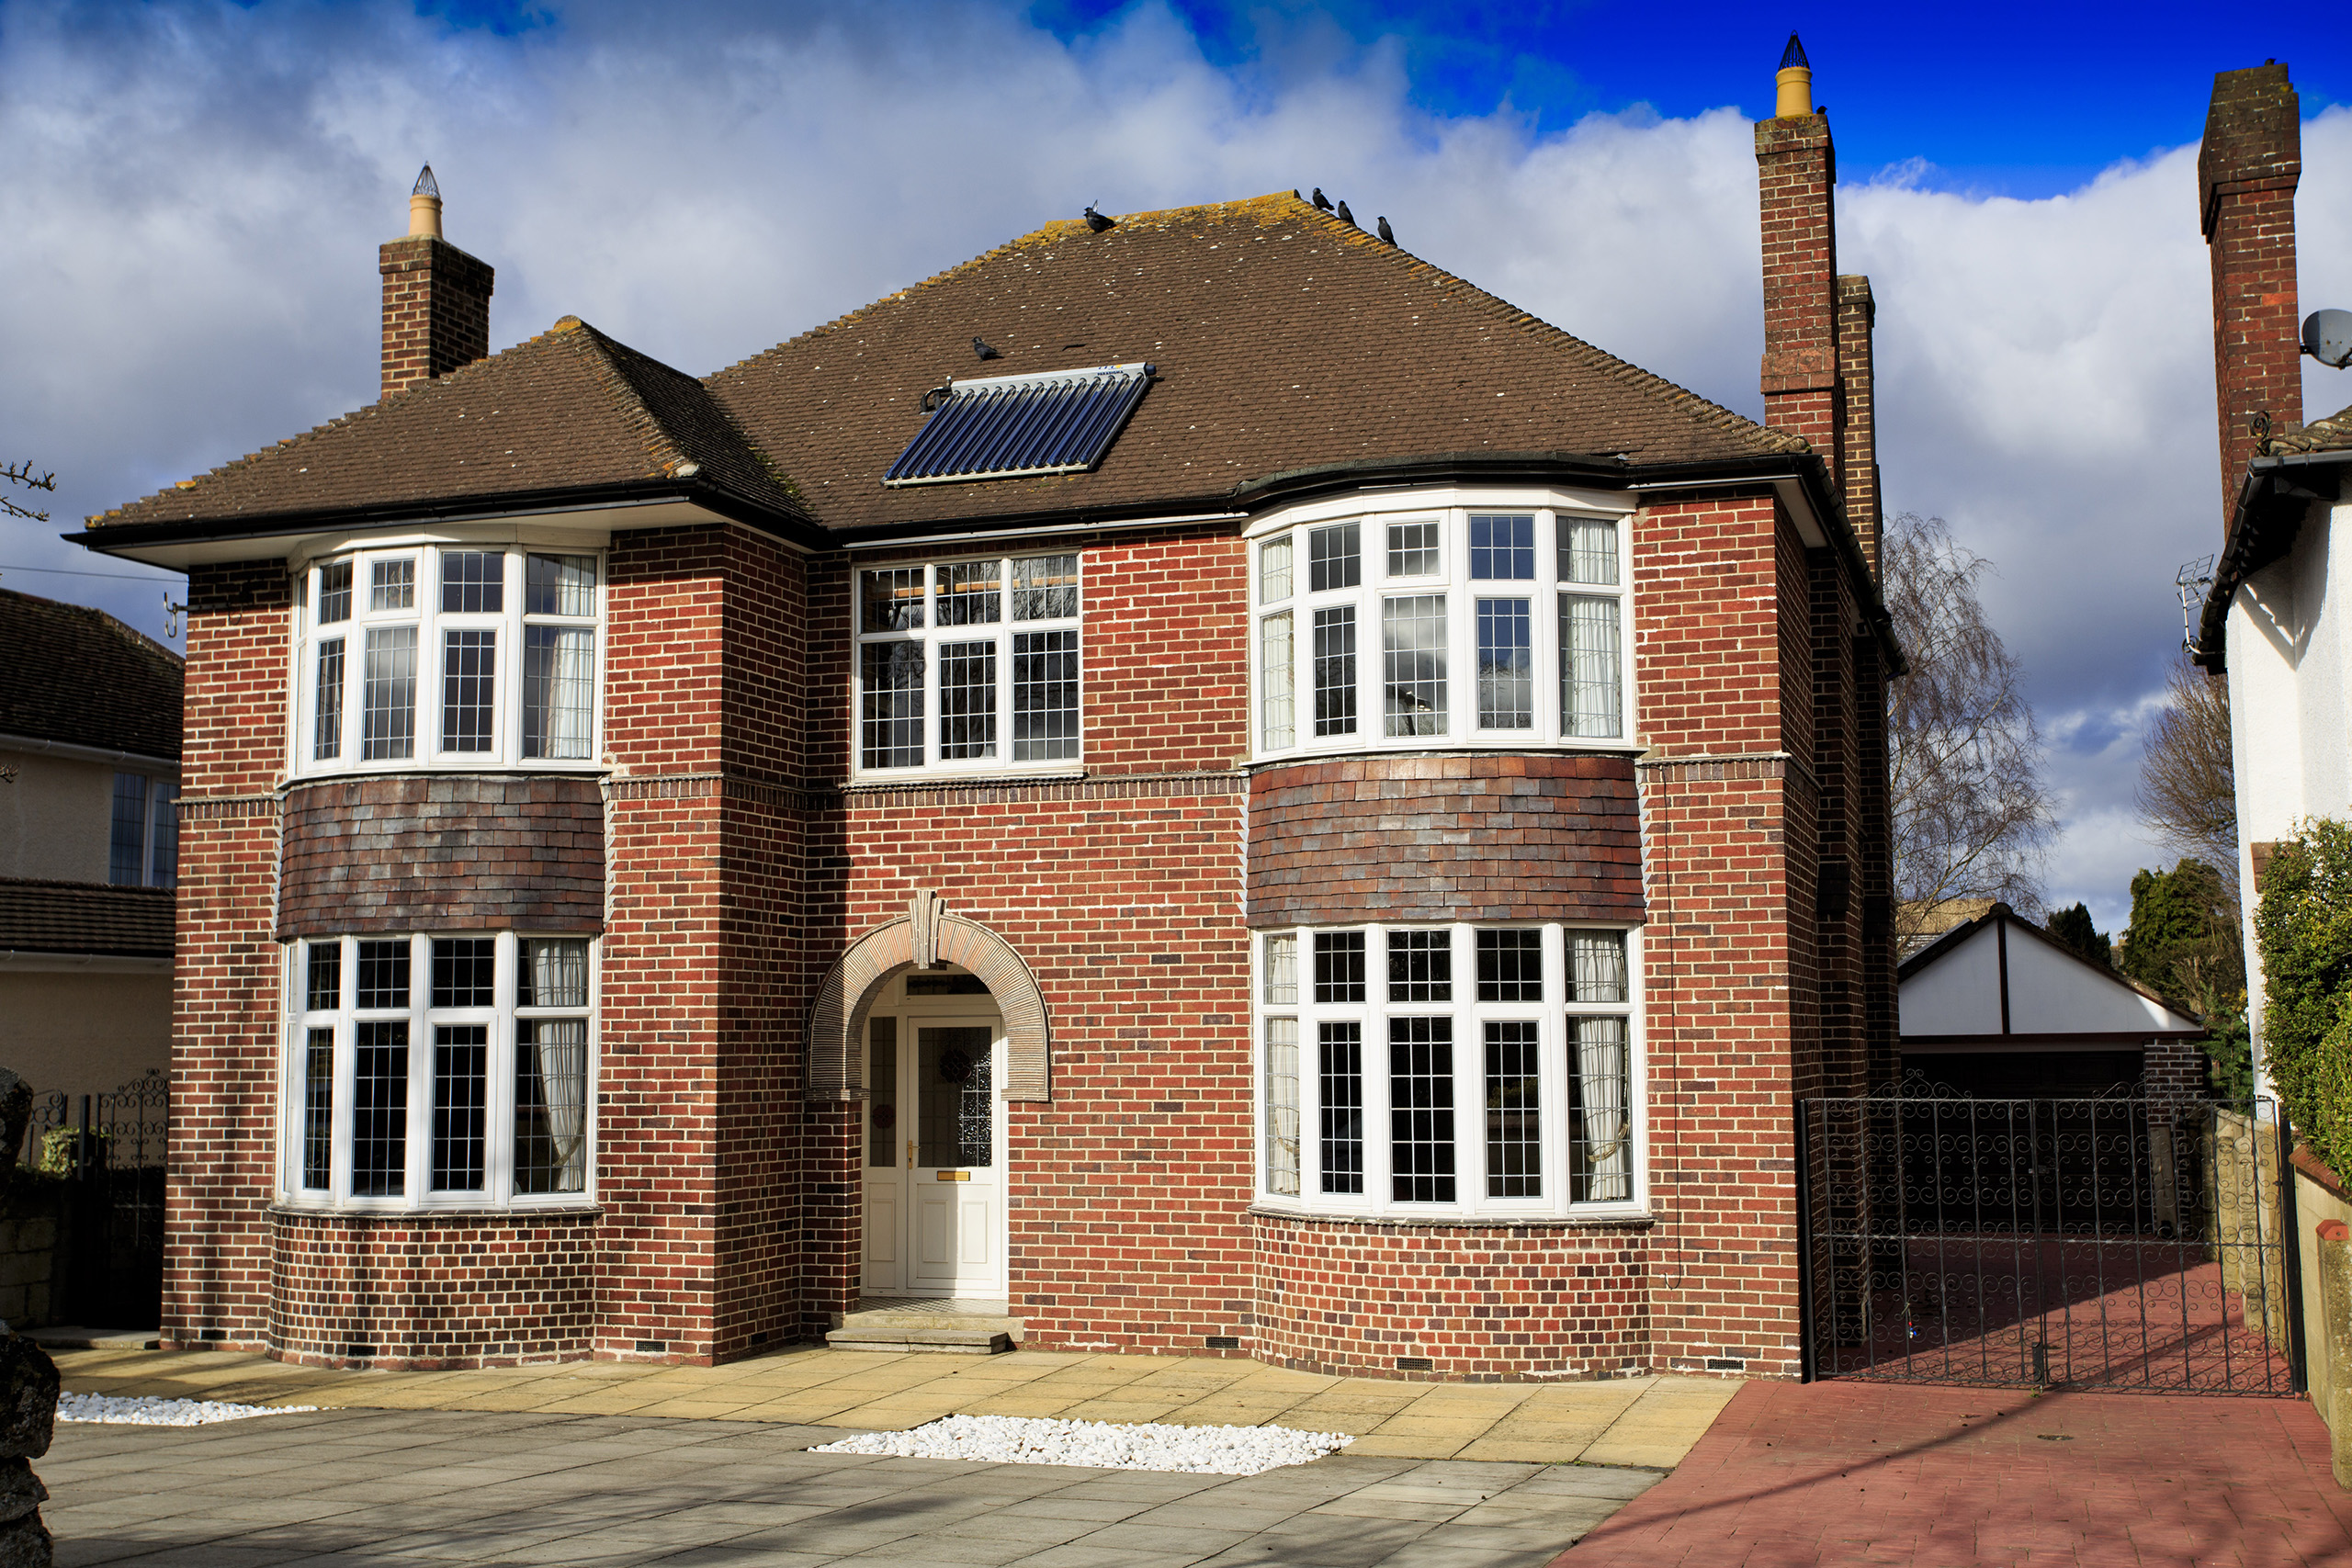 Bow Bay Window Prices East Anglia